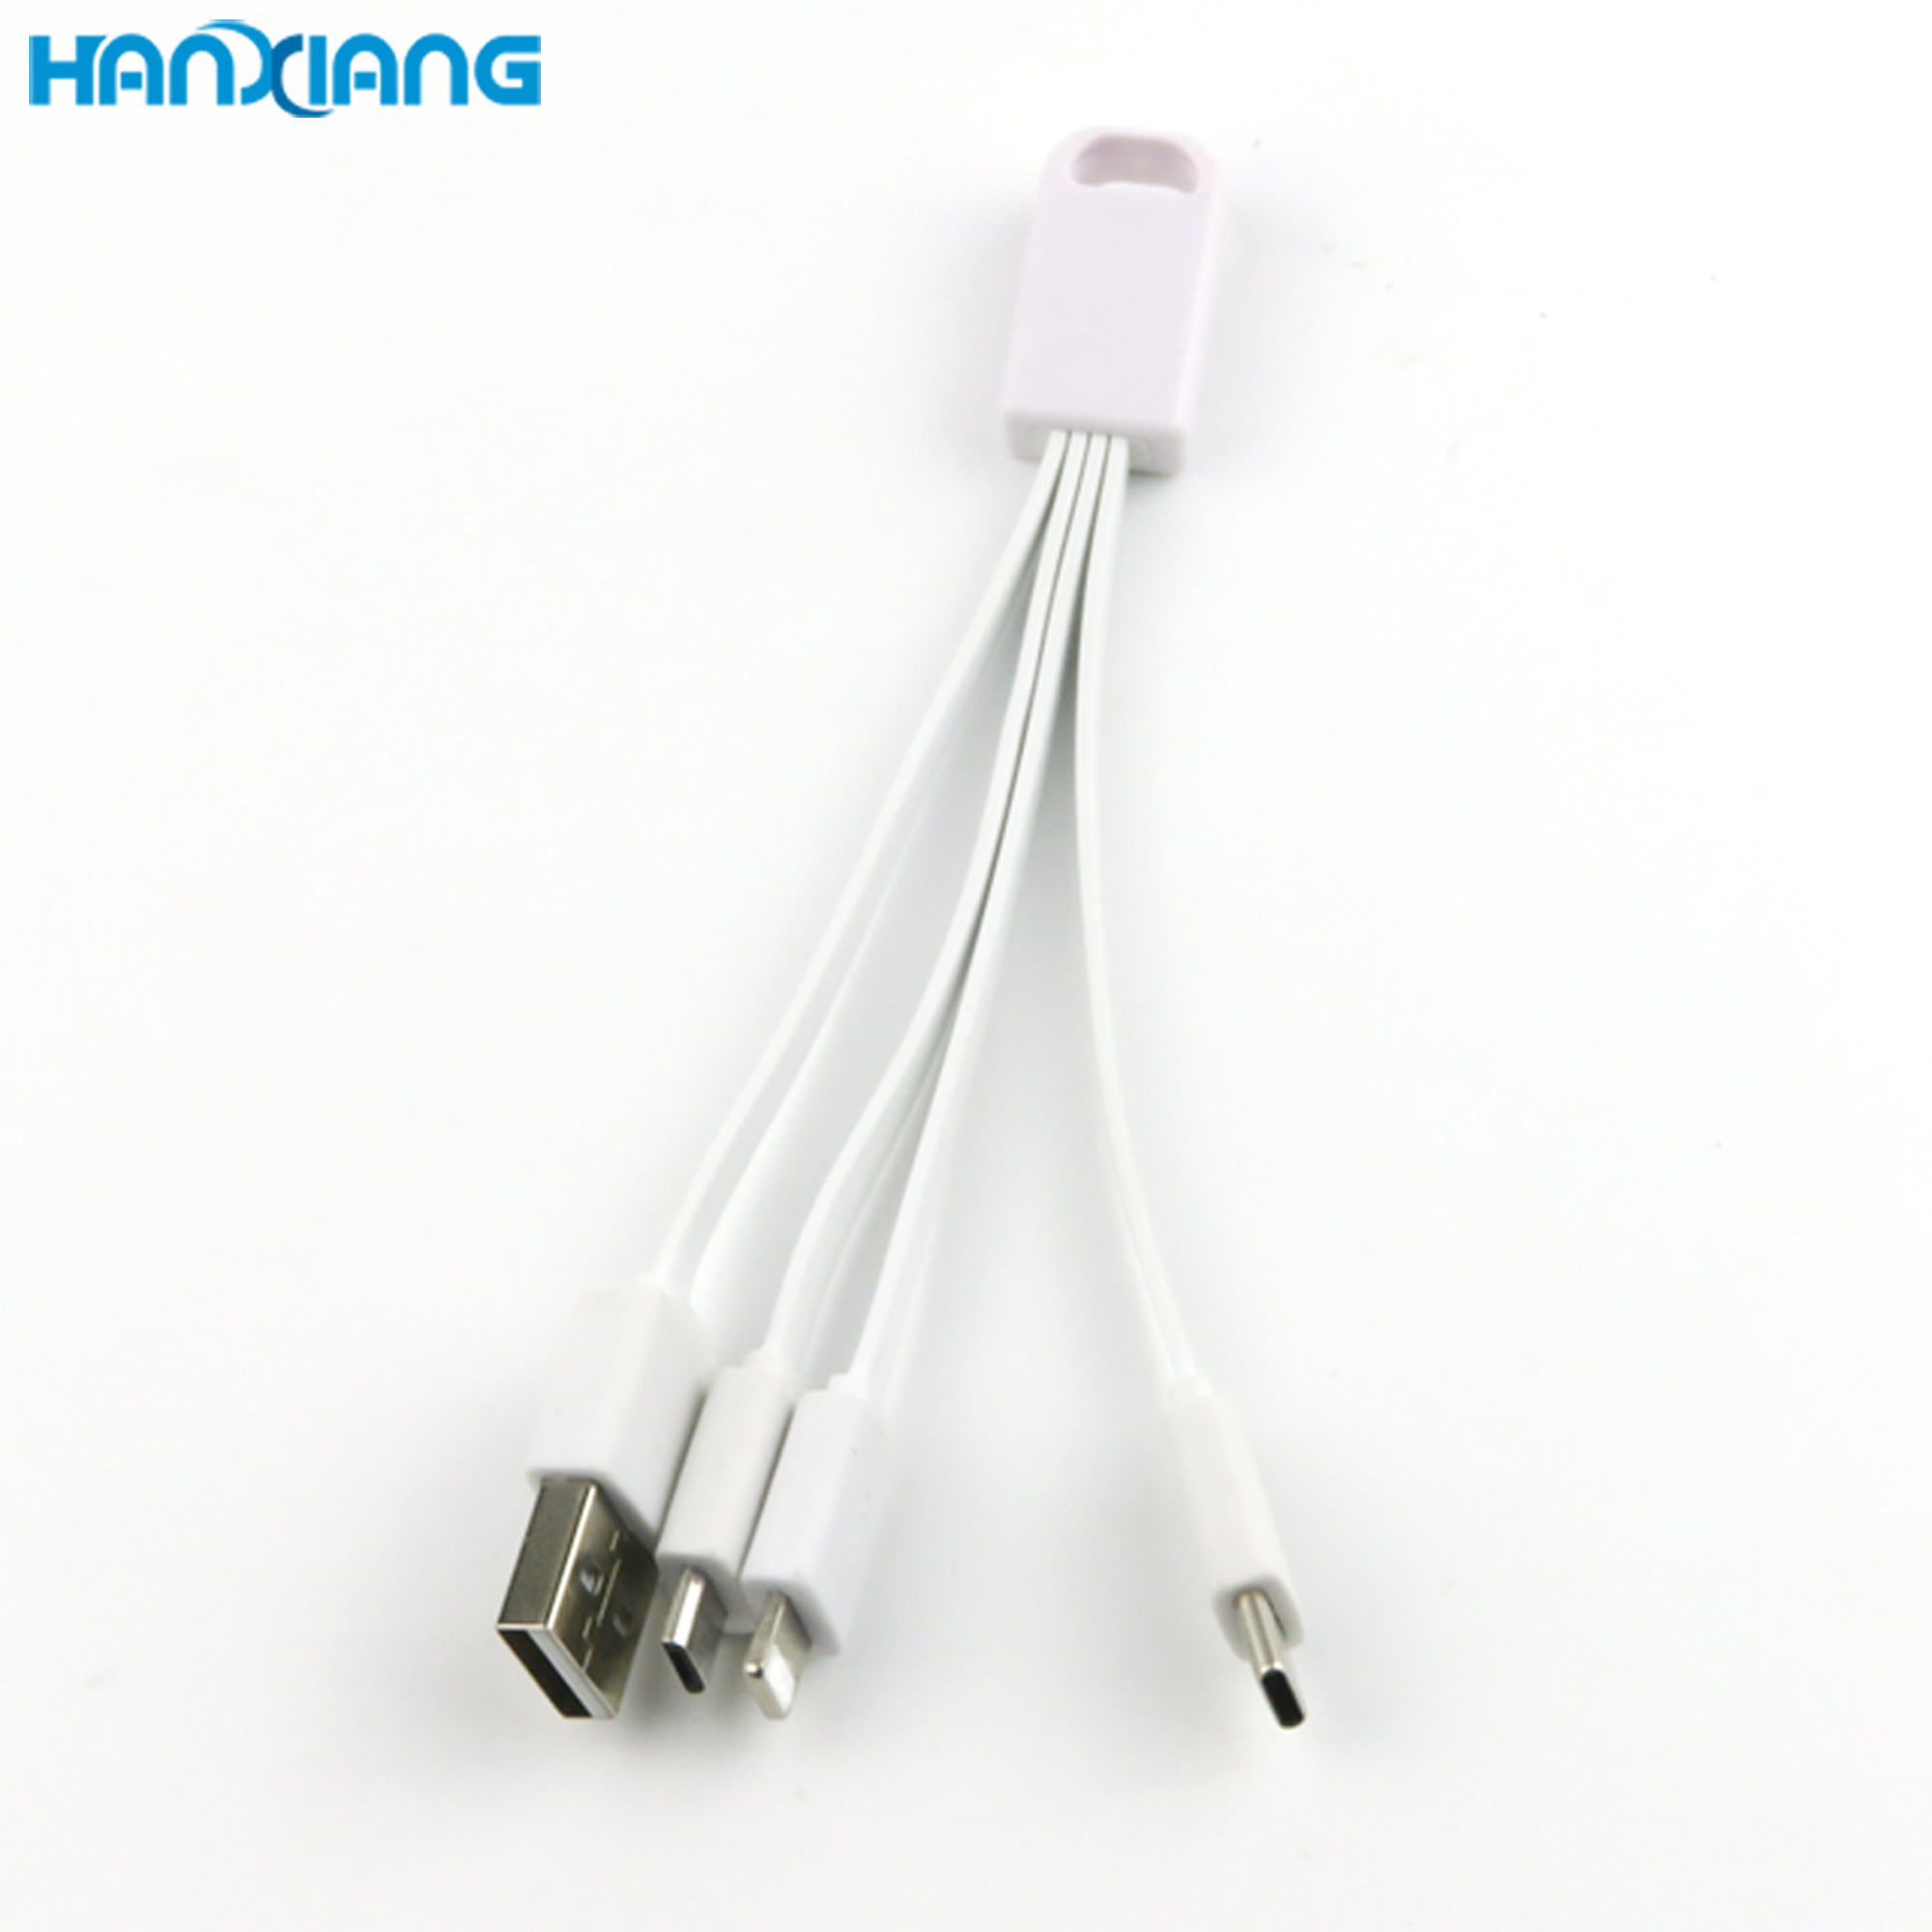 2021 Mobile Accessories Universal Data Quick Charging New Lightweight 3 In 1 USB Electric PVC Cable for Mobile Phone